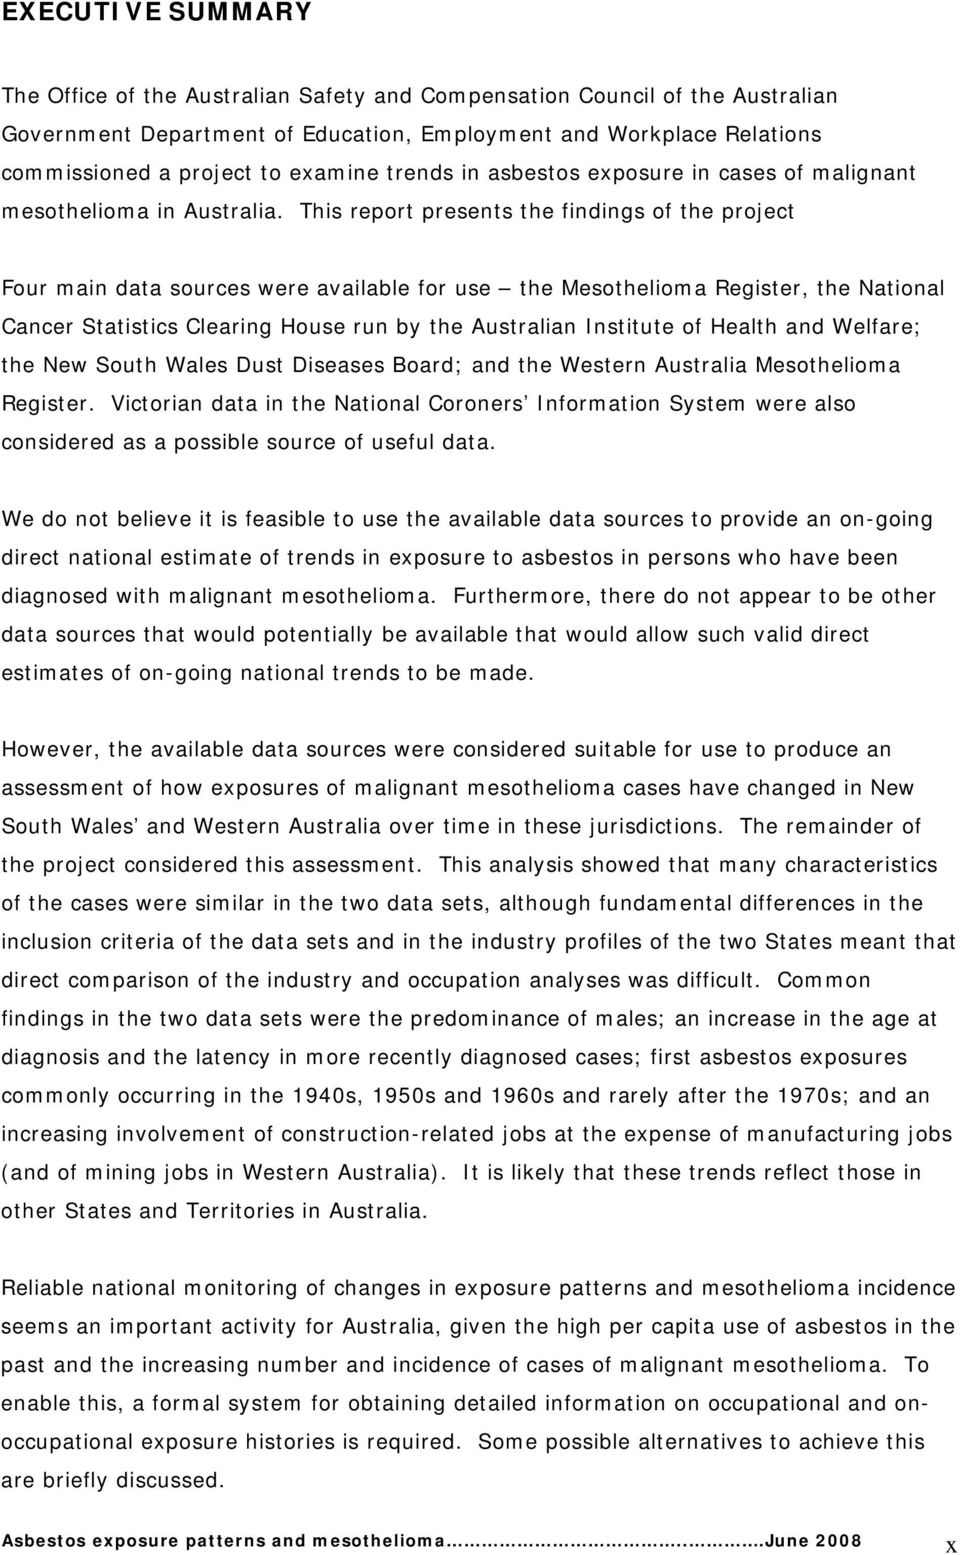 This report presents the findings of the project Four main data sources were available for use the Mesothelioma Register, the National Cancer Statistics Clearing House run by the Australian Institute